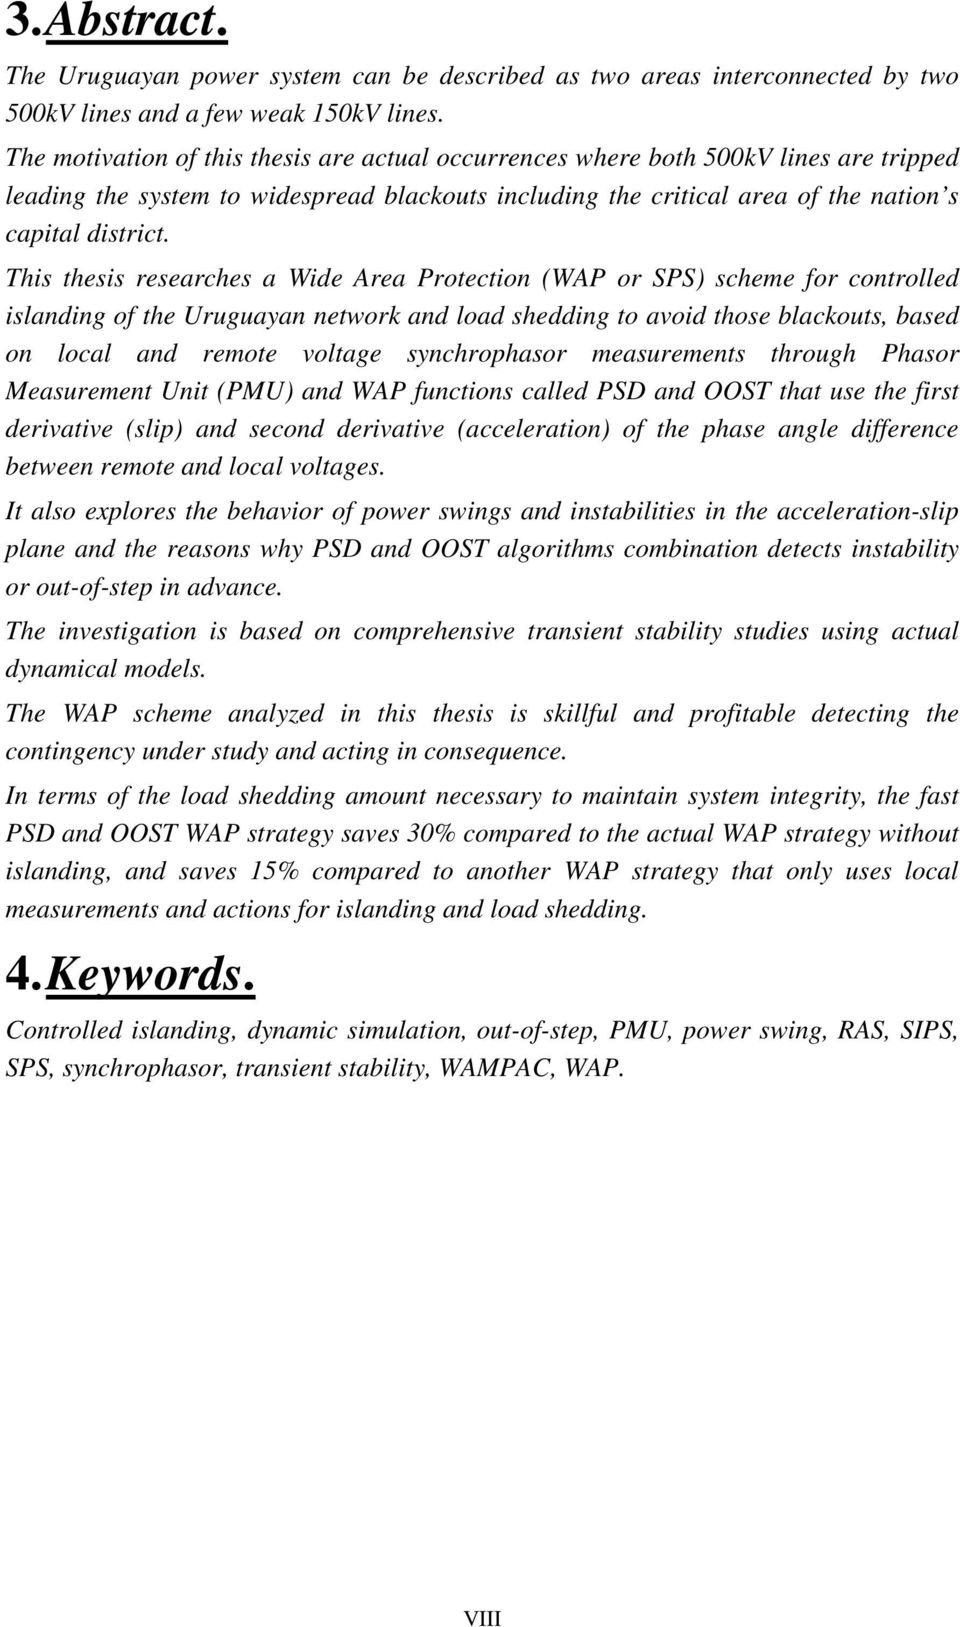 This thesis researches a Wide Area Protection (WAP or SPS) scheme for controlled islanding of the Uruguayan network and load shedding to avoid those blackouts, based on local and remote voltage